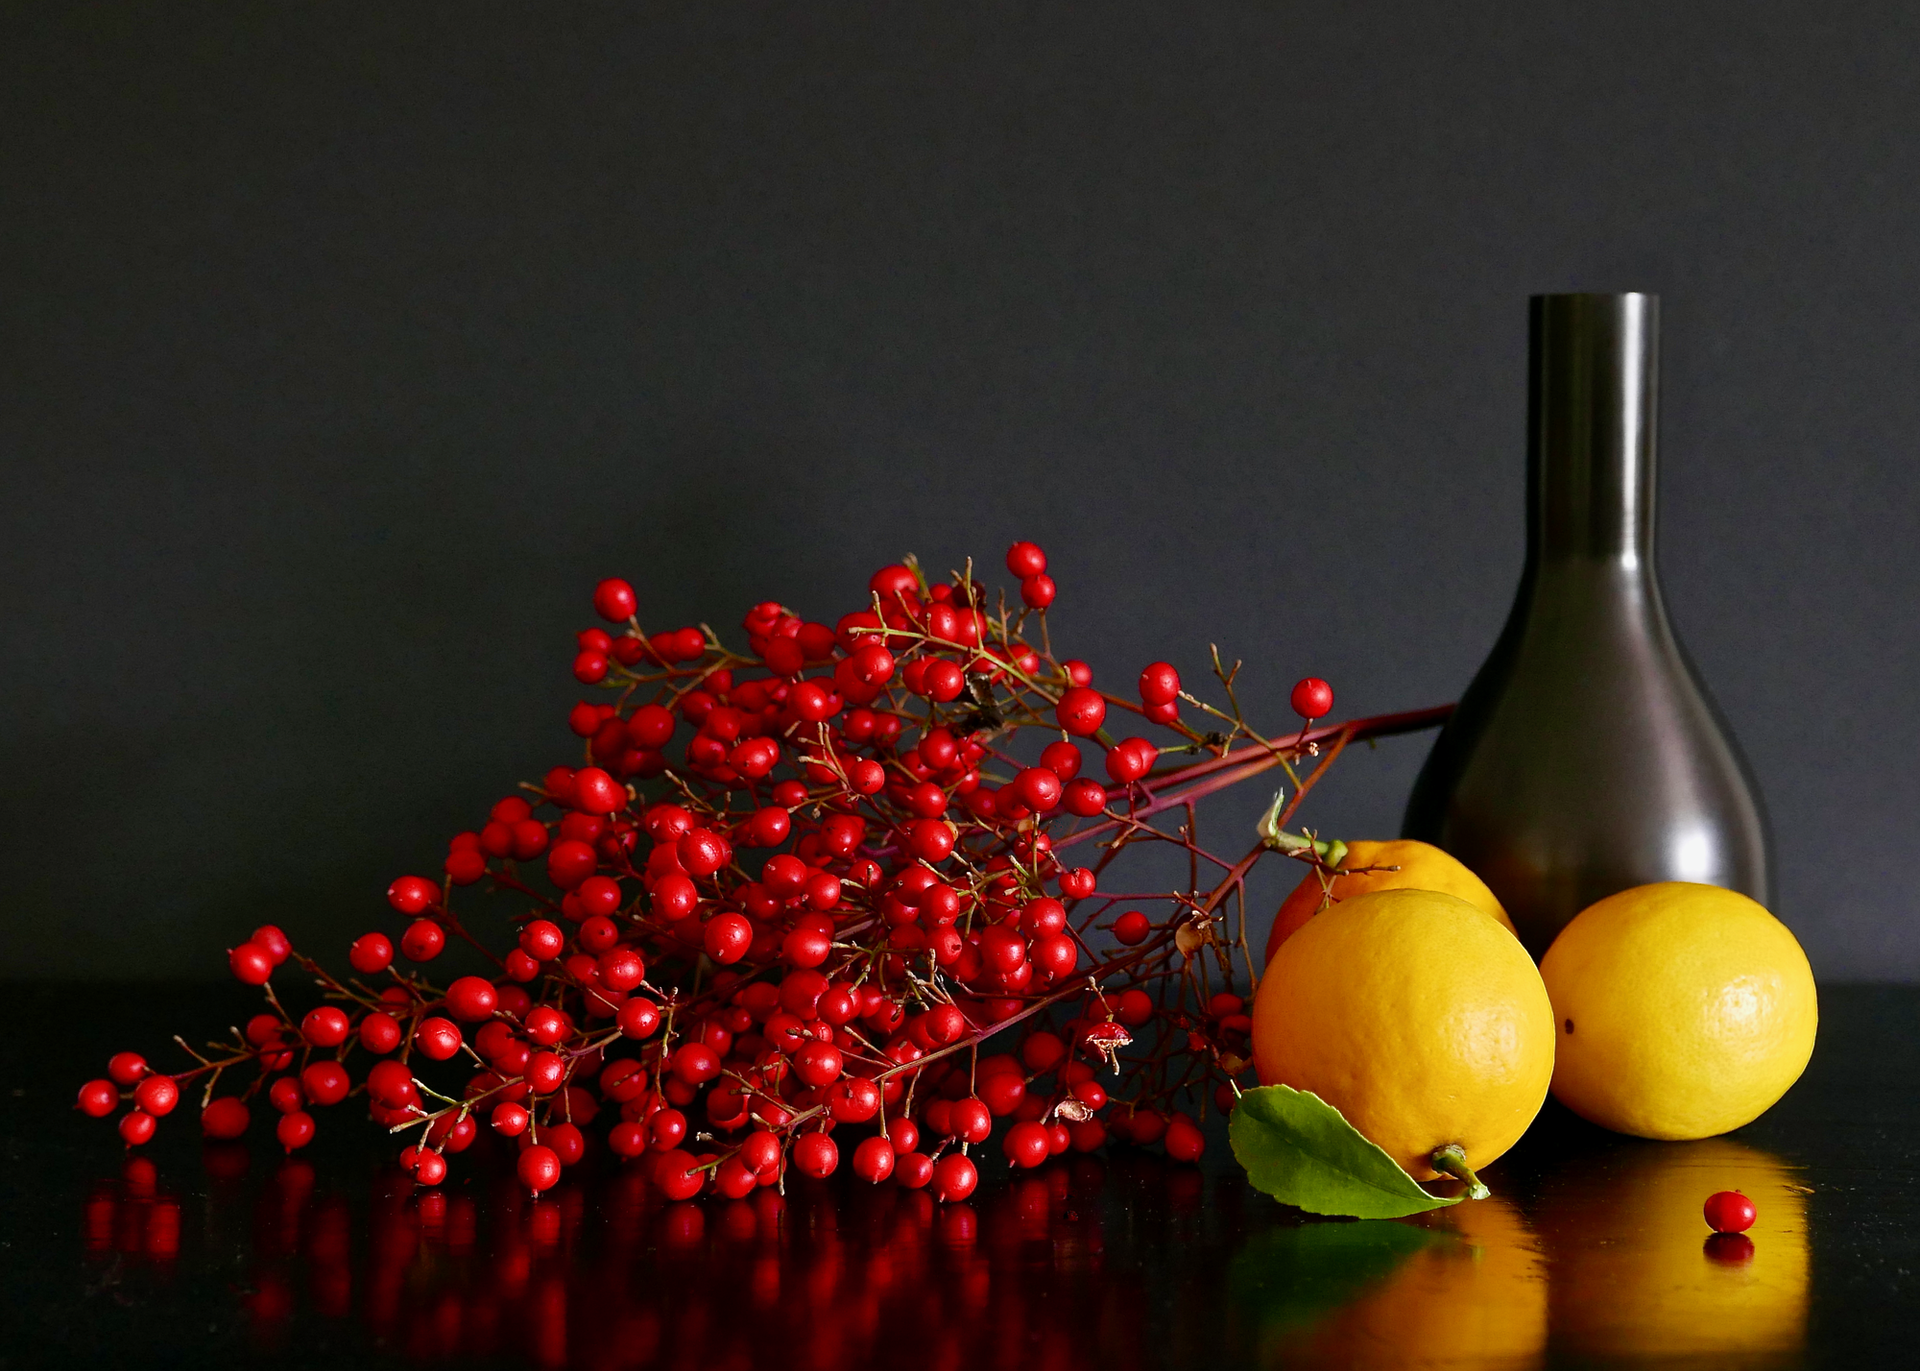 Berries, Lemons, and Black Vase.tiff